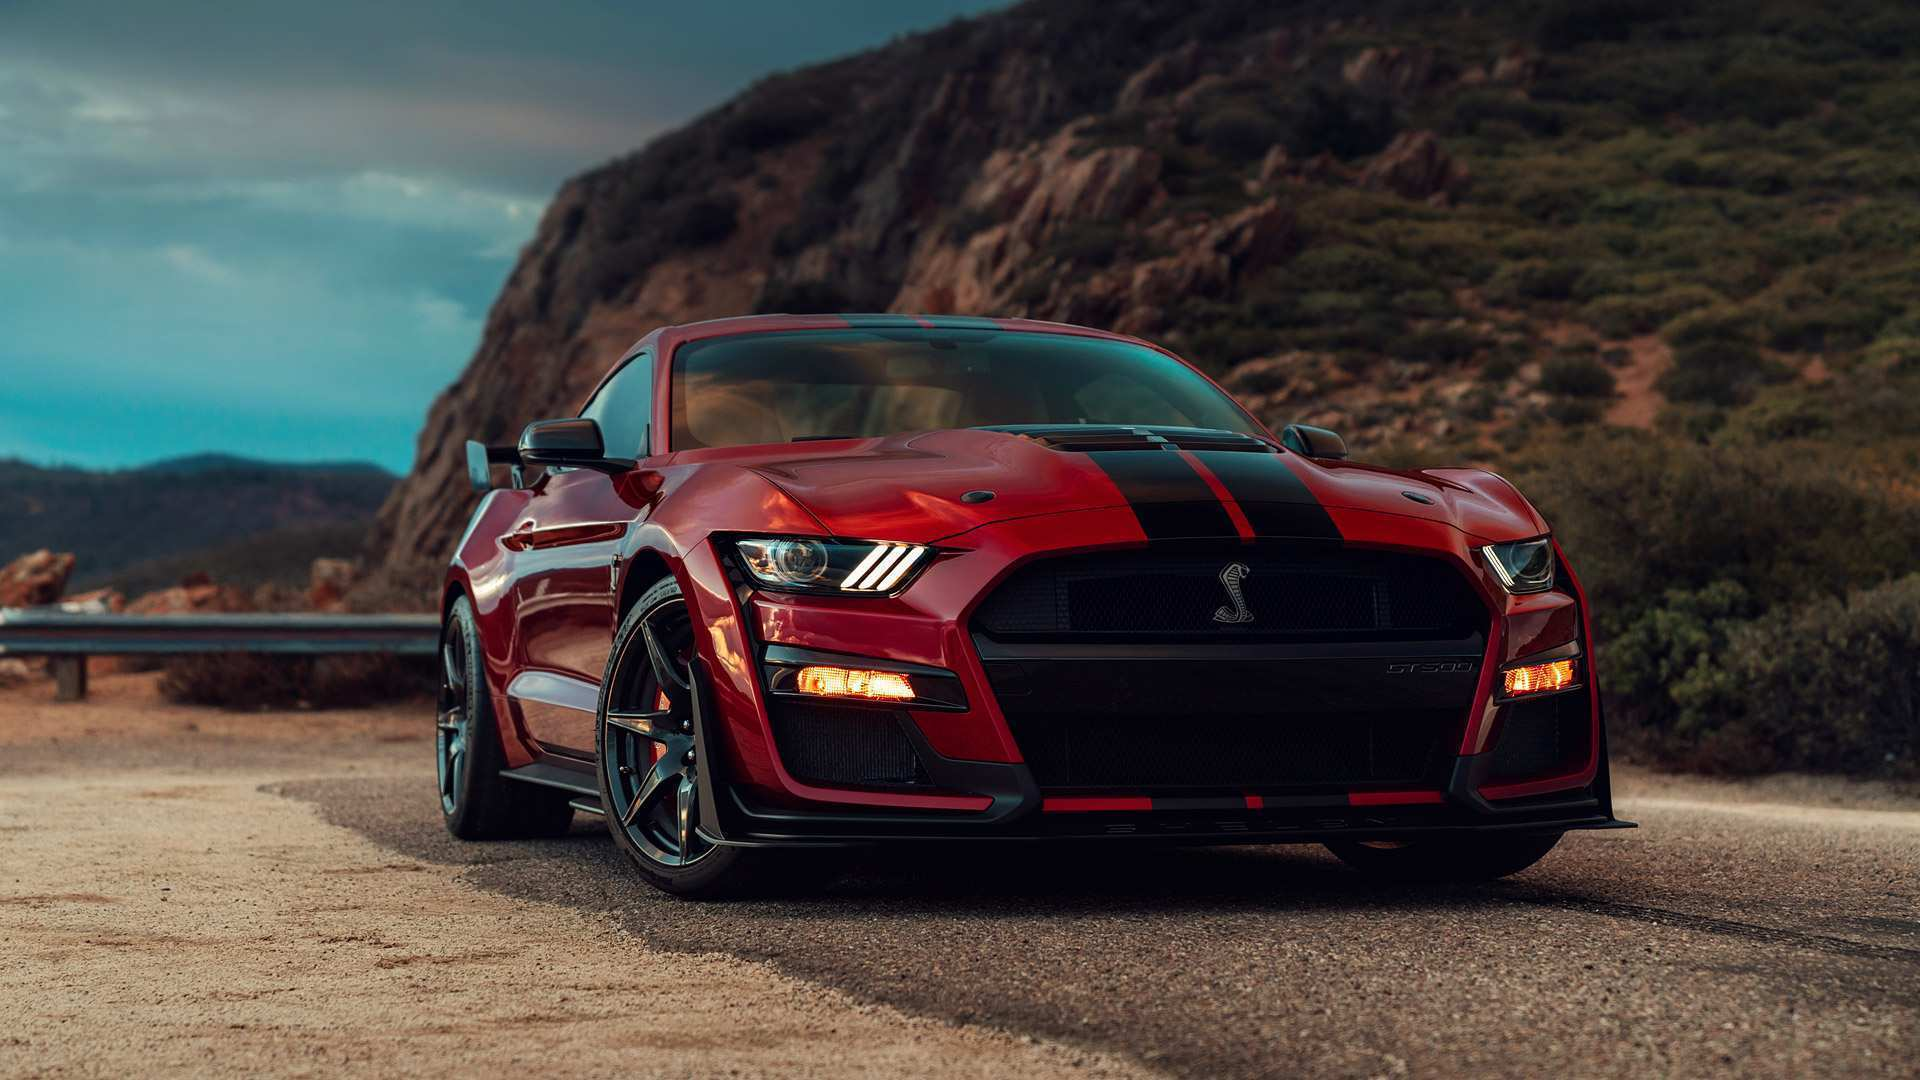 15 Gallery of 2020 Mustang Mach Reviews with 2020 Mustang Mach